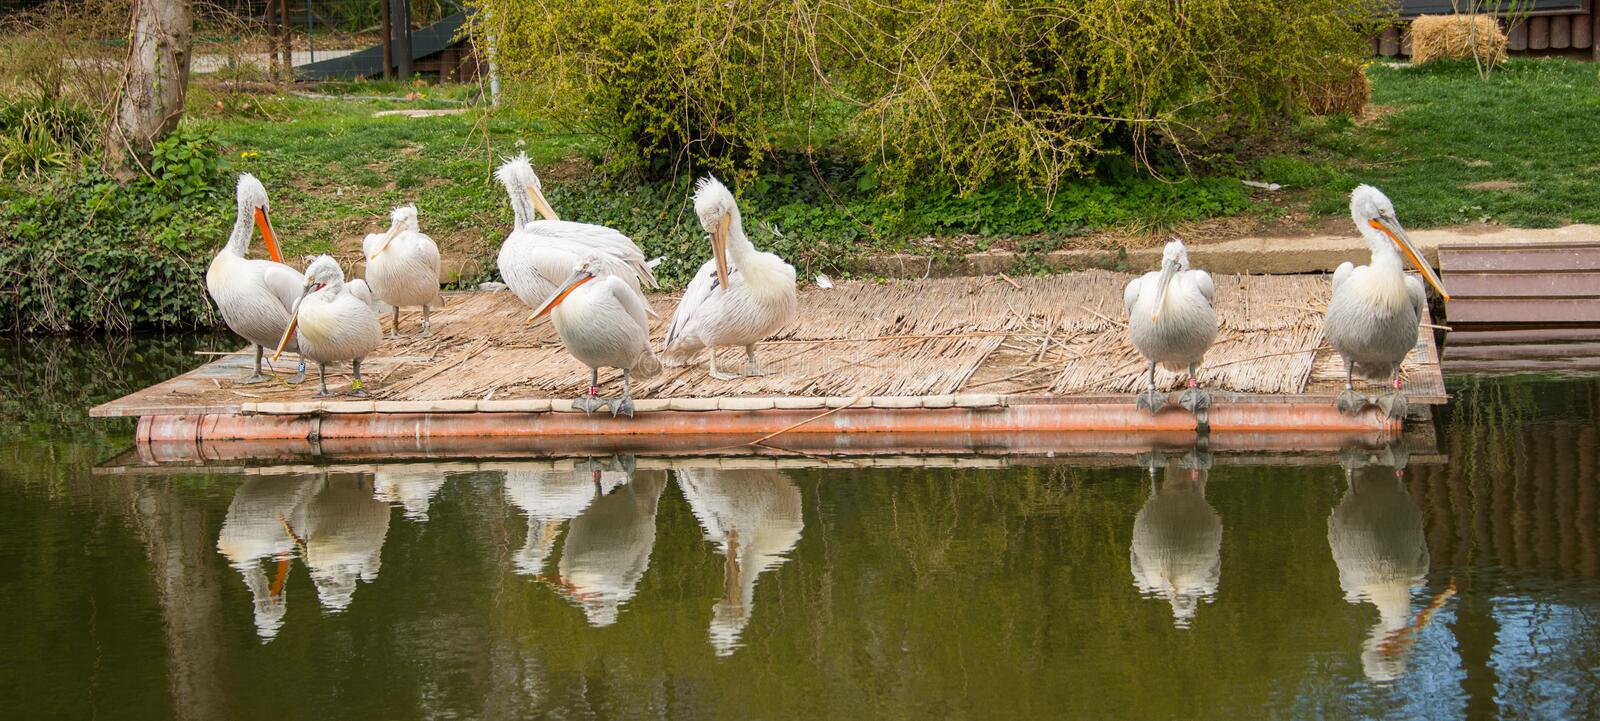 Pelecanus onocrotalus / Great white pelican in a group on a platform on a lake. Great white pelican also known as the eastern white pelican, rosy pelican or royalty free stock images